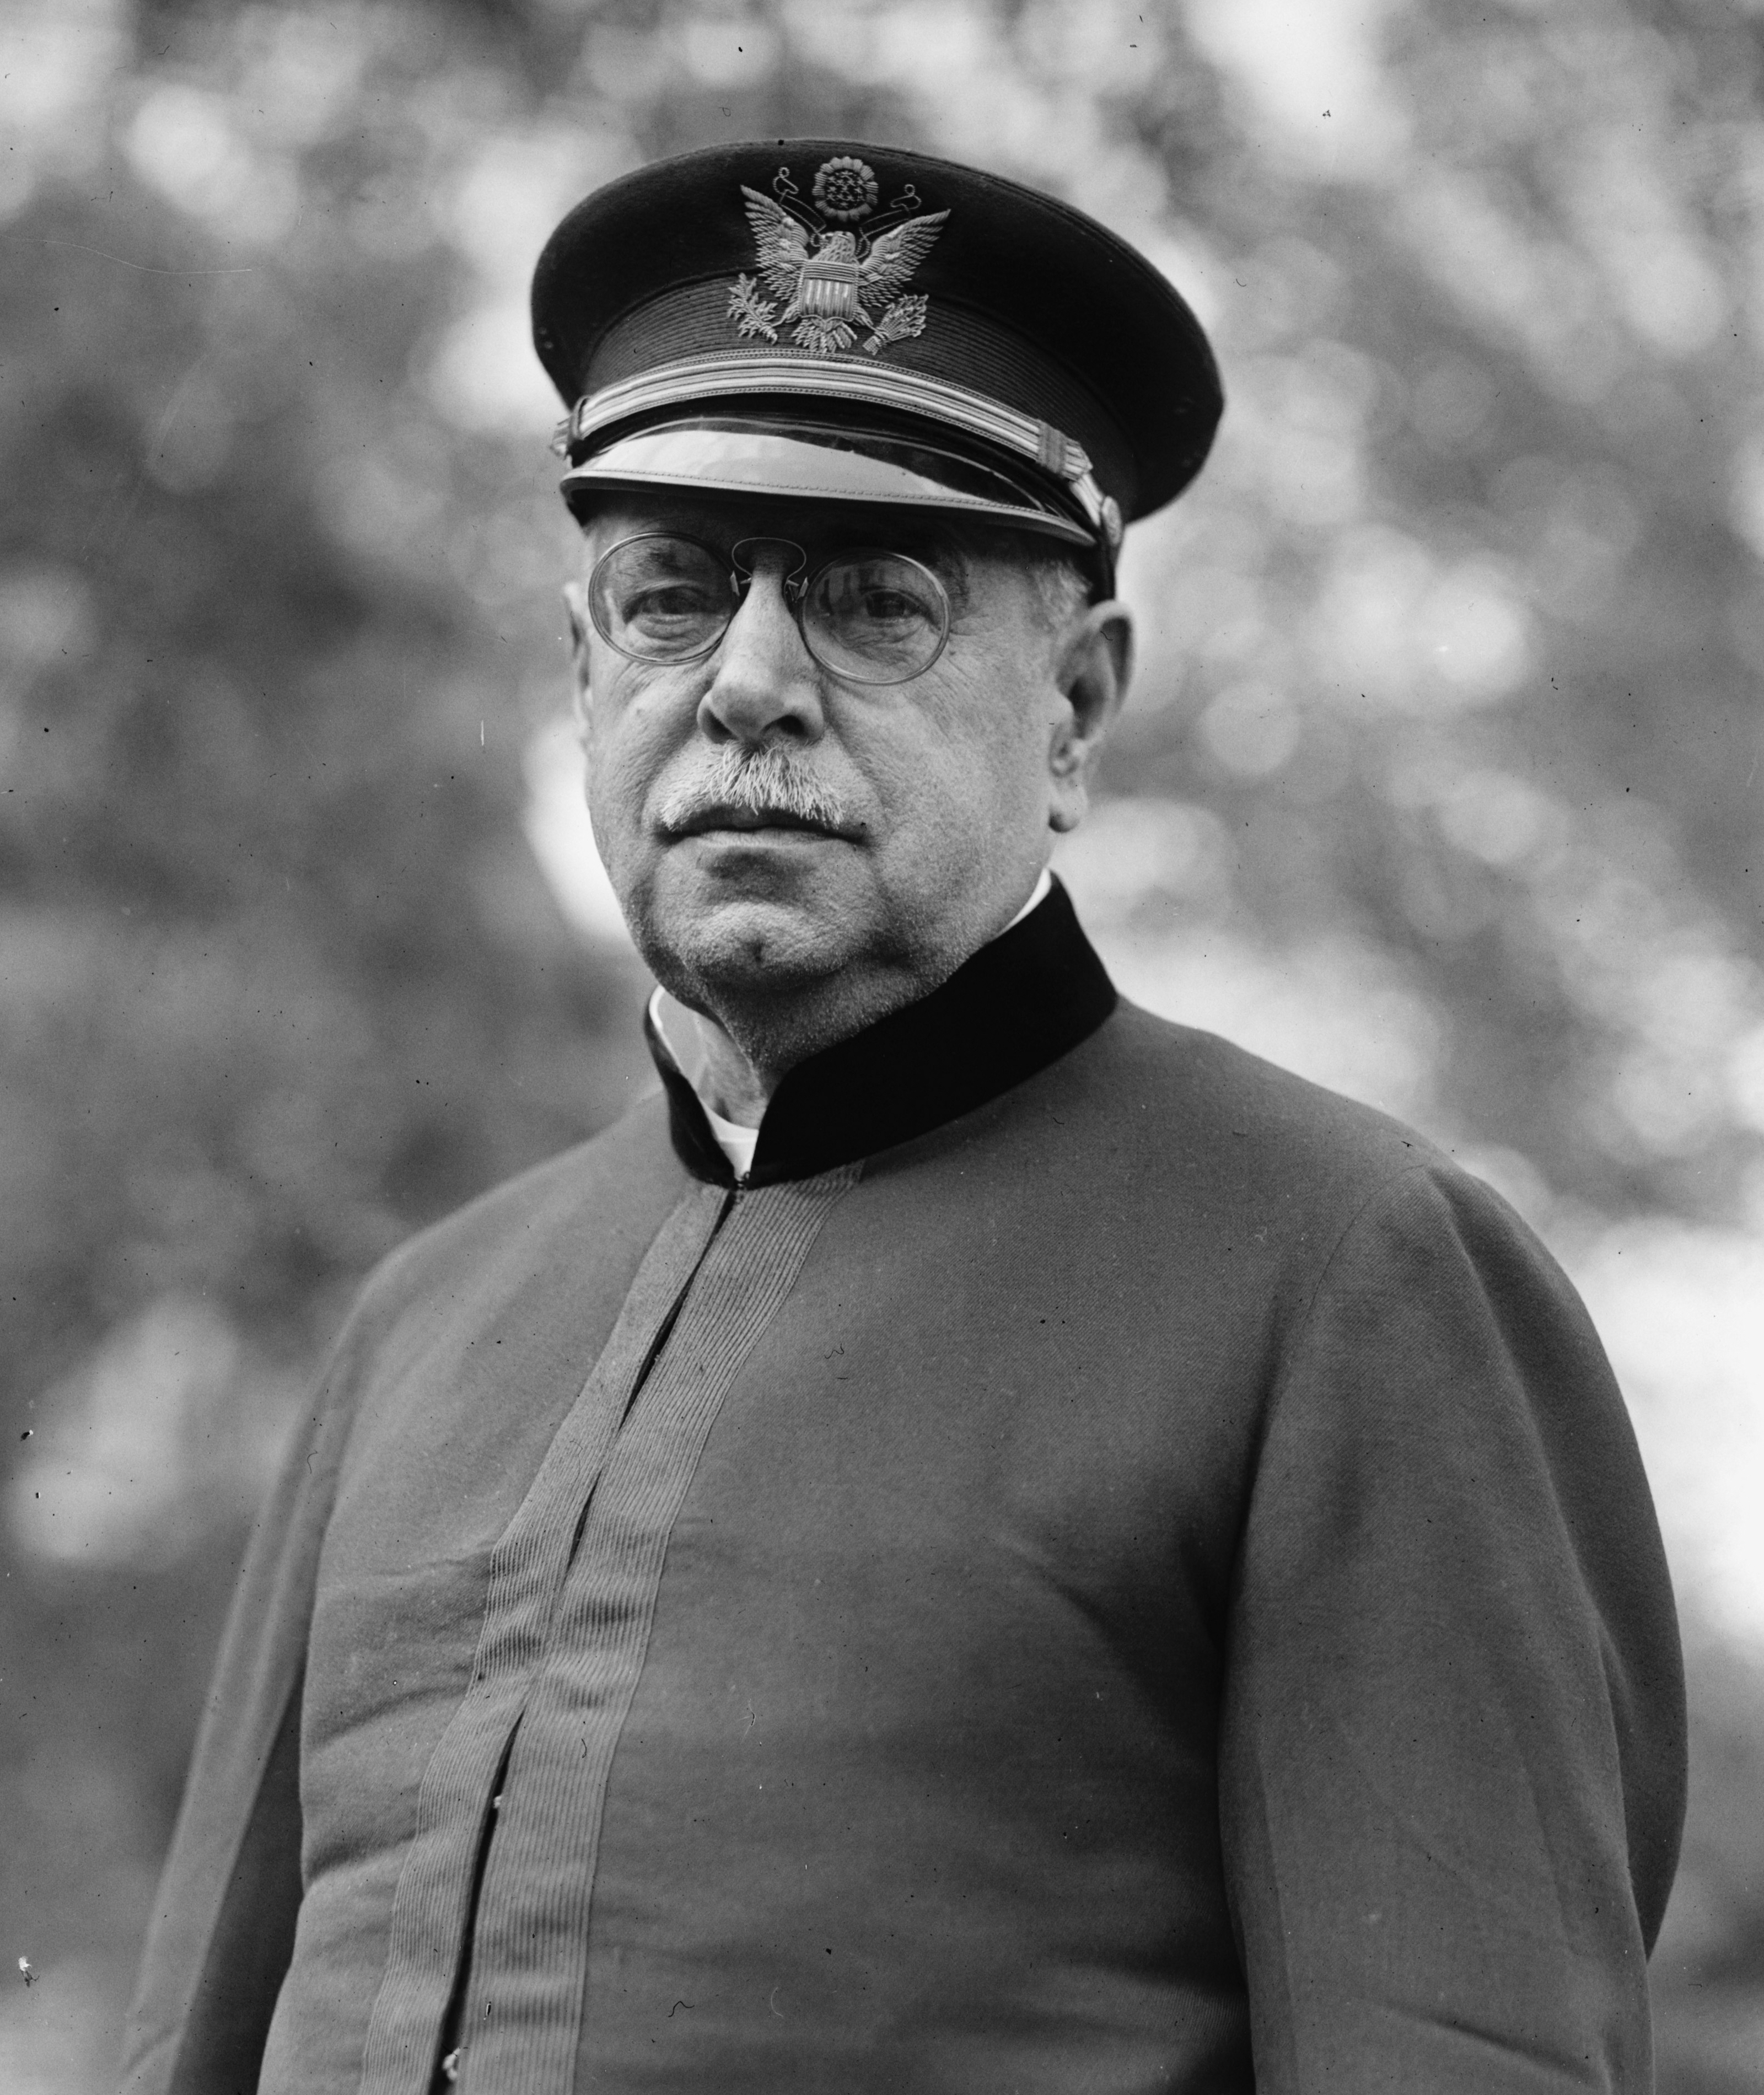 Sousa in November 1922<!--photo from the National Photo Company collection at the [[Library of Congress]]-->